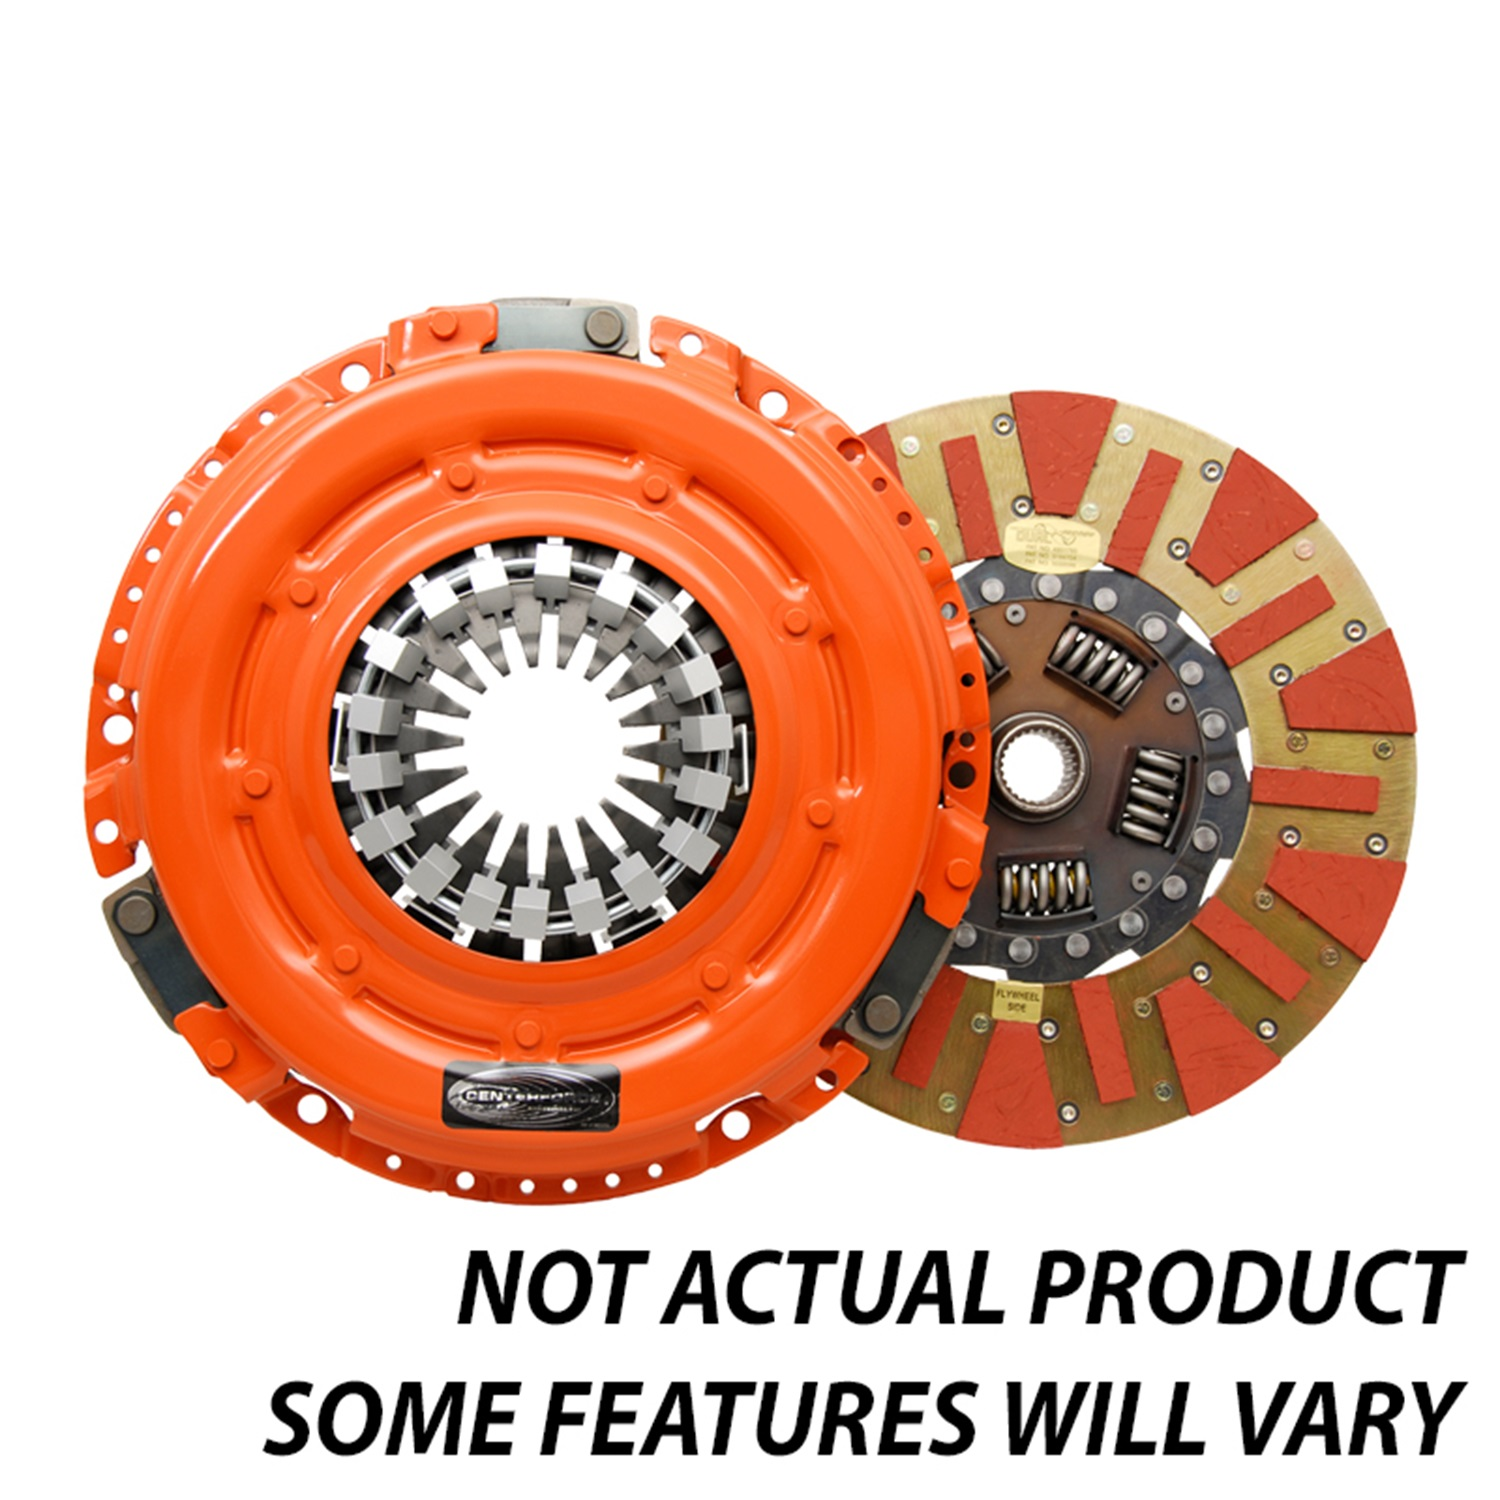 Centerforce DF148075 Dual Friction(R), Clutch Pressure Plate and Disc Set Dual Friction(R), Clutch Pressure Plate and Disc Set